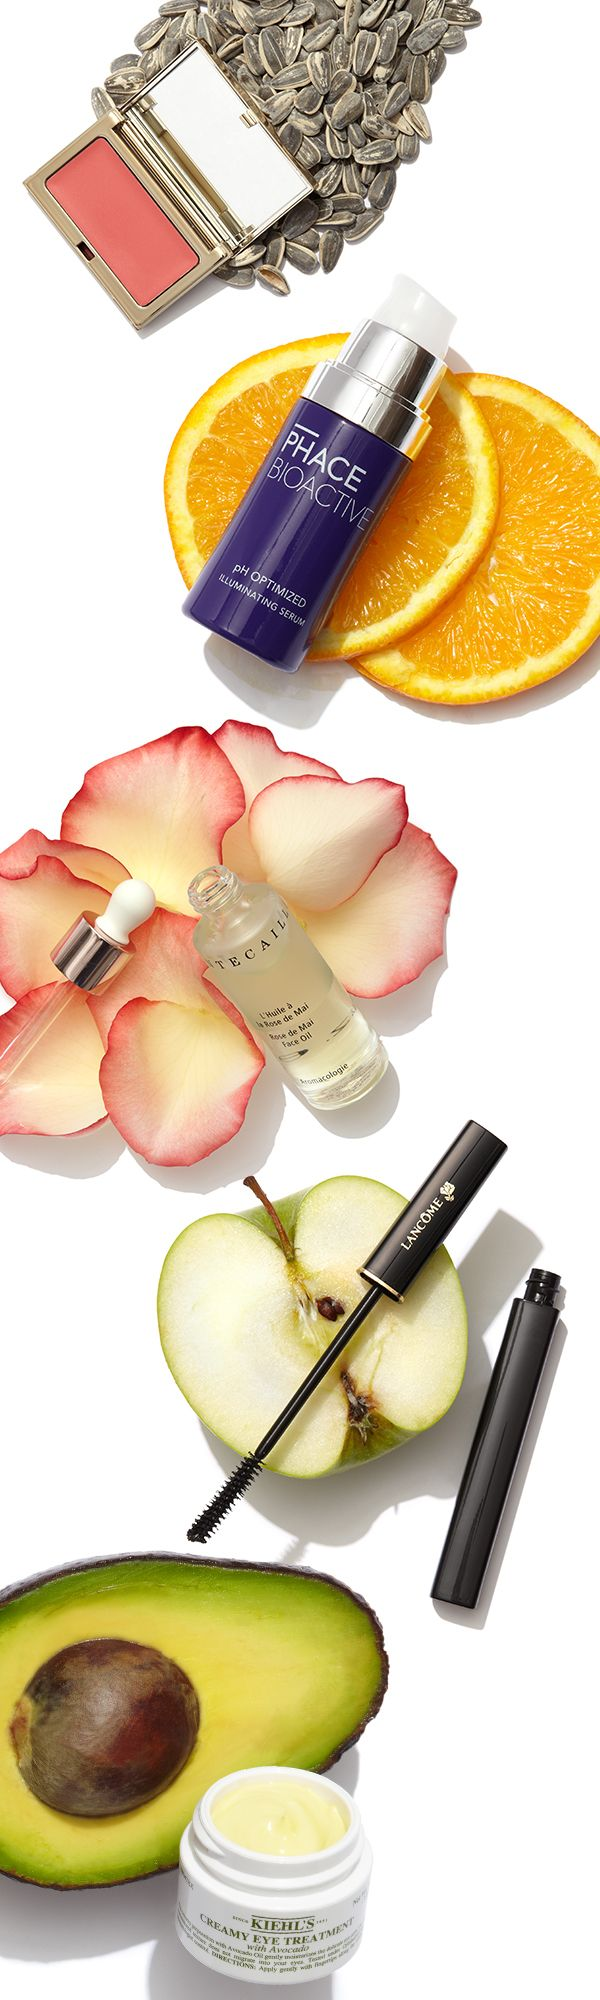 Discover Mother Nature's secret botanical spirit. #SaksBeauty